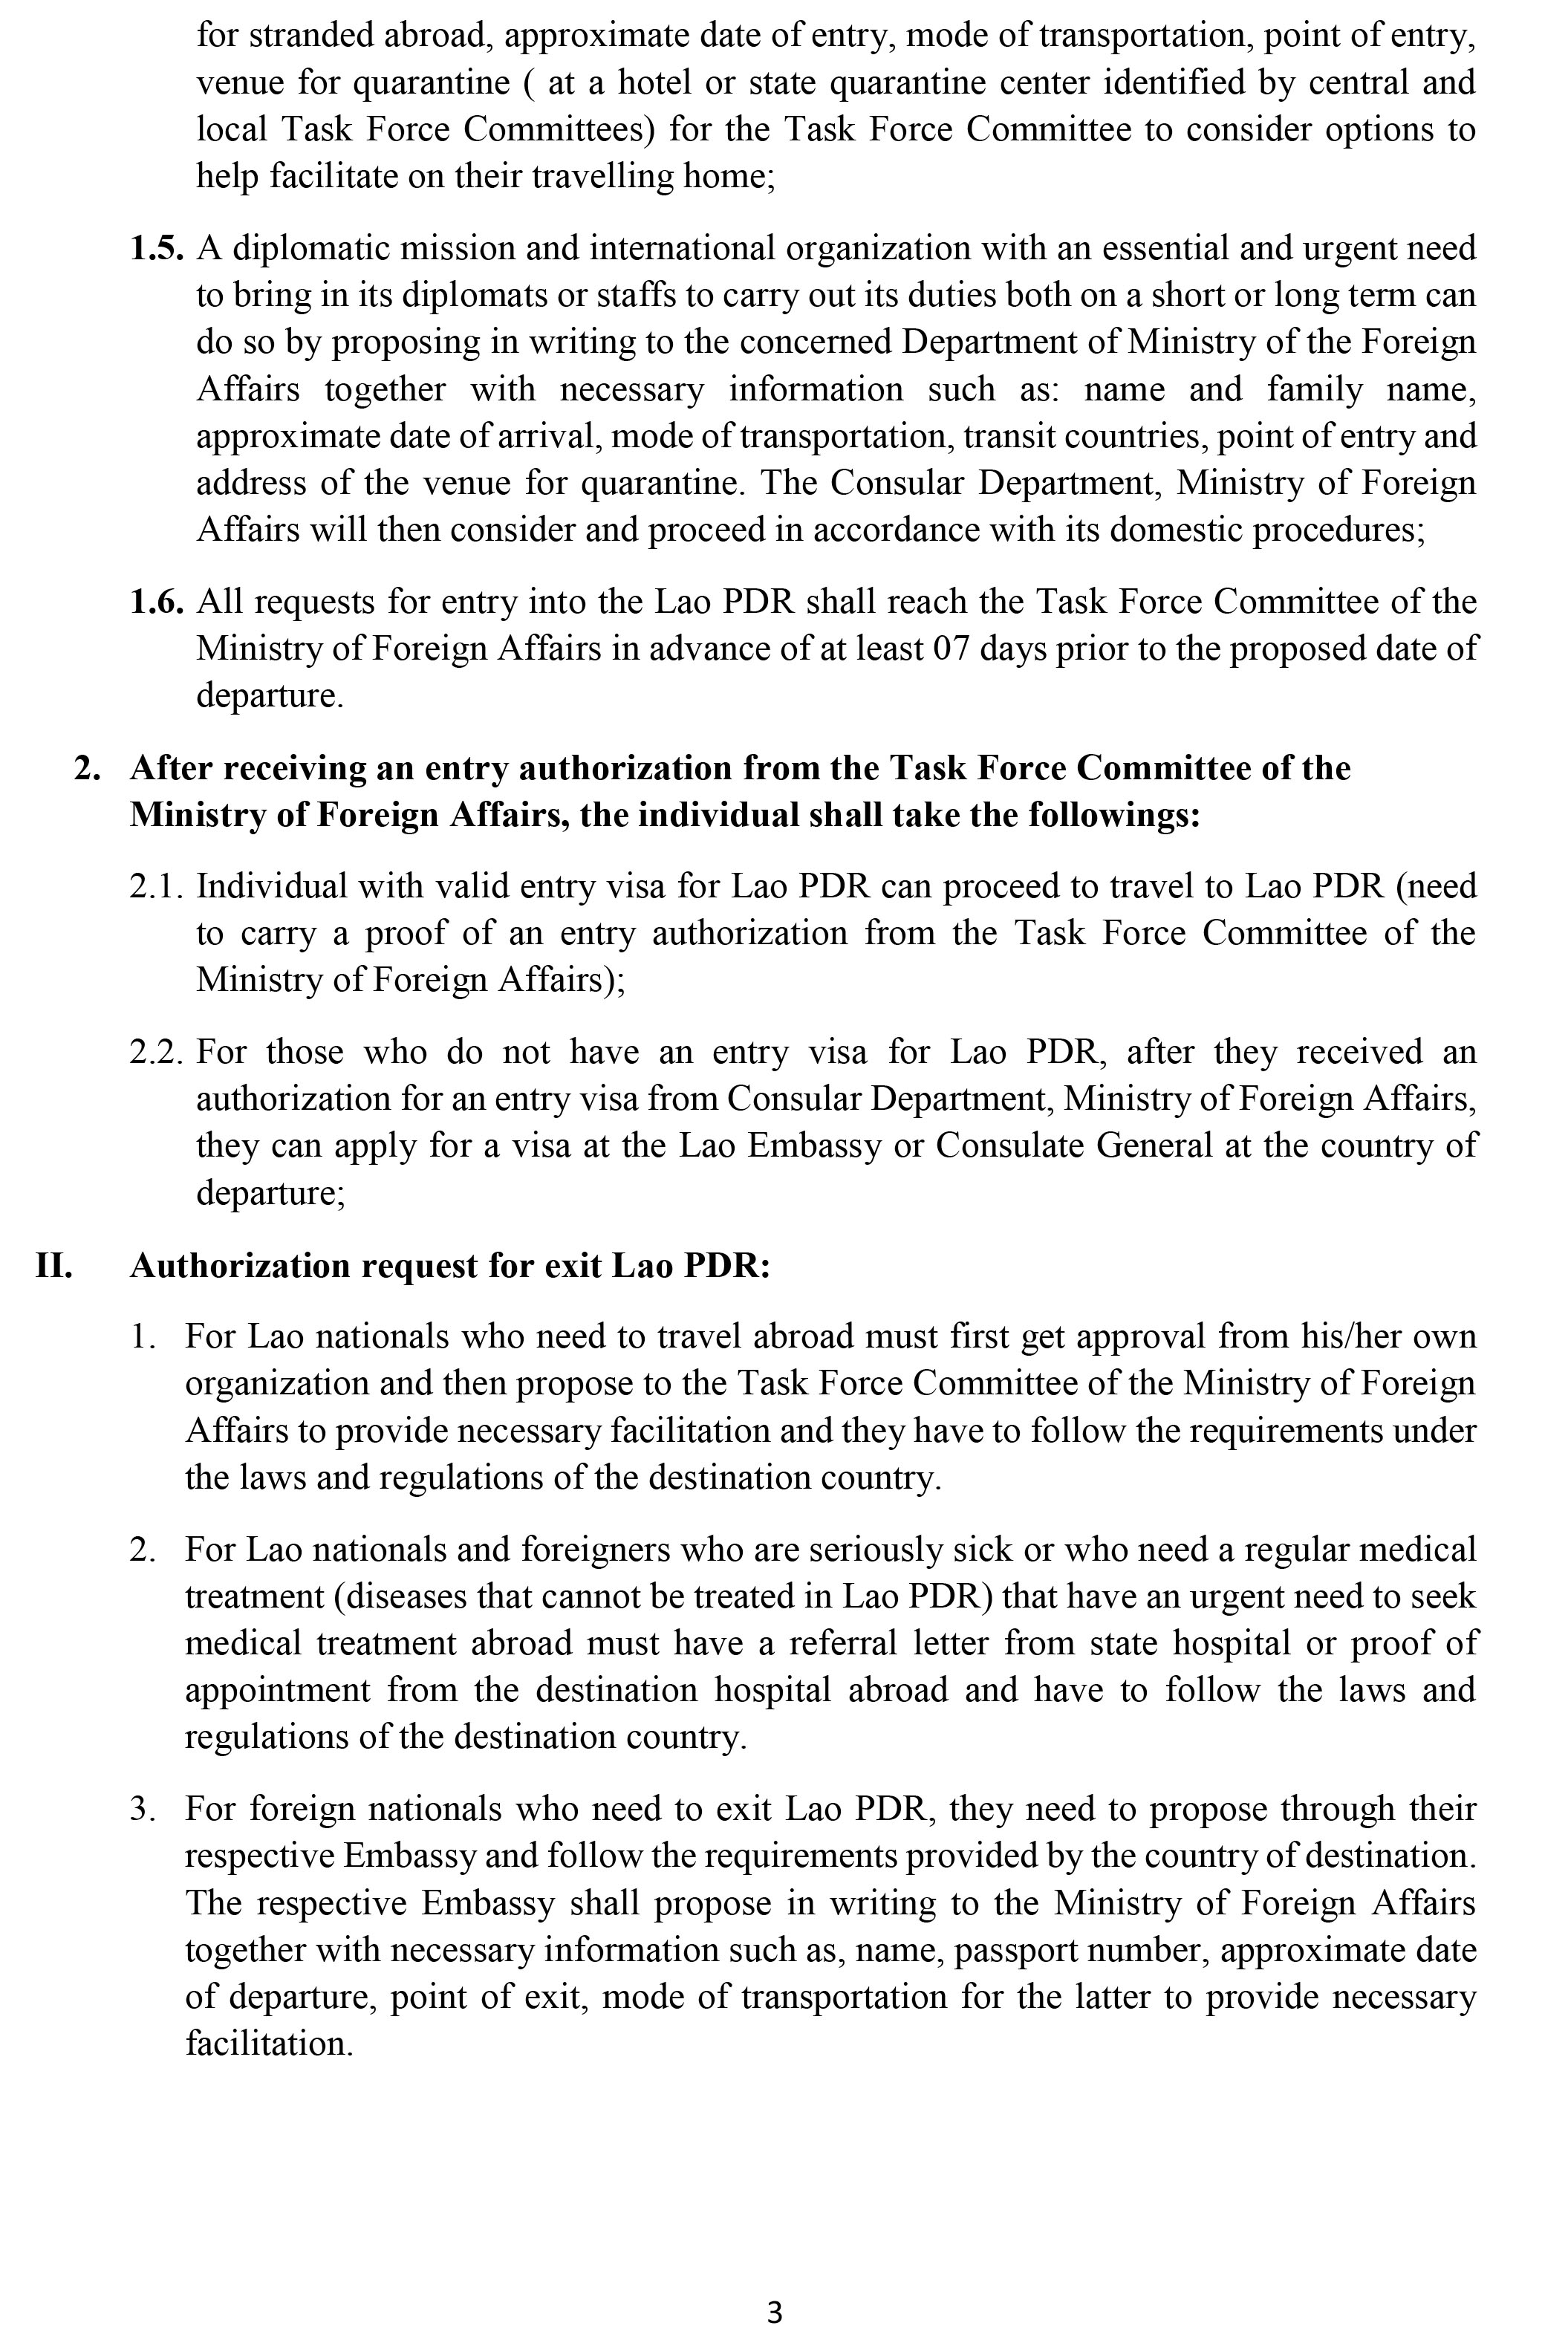 MOFA-Procedural Advisory on documentation and steps 1861-3